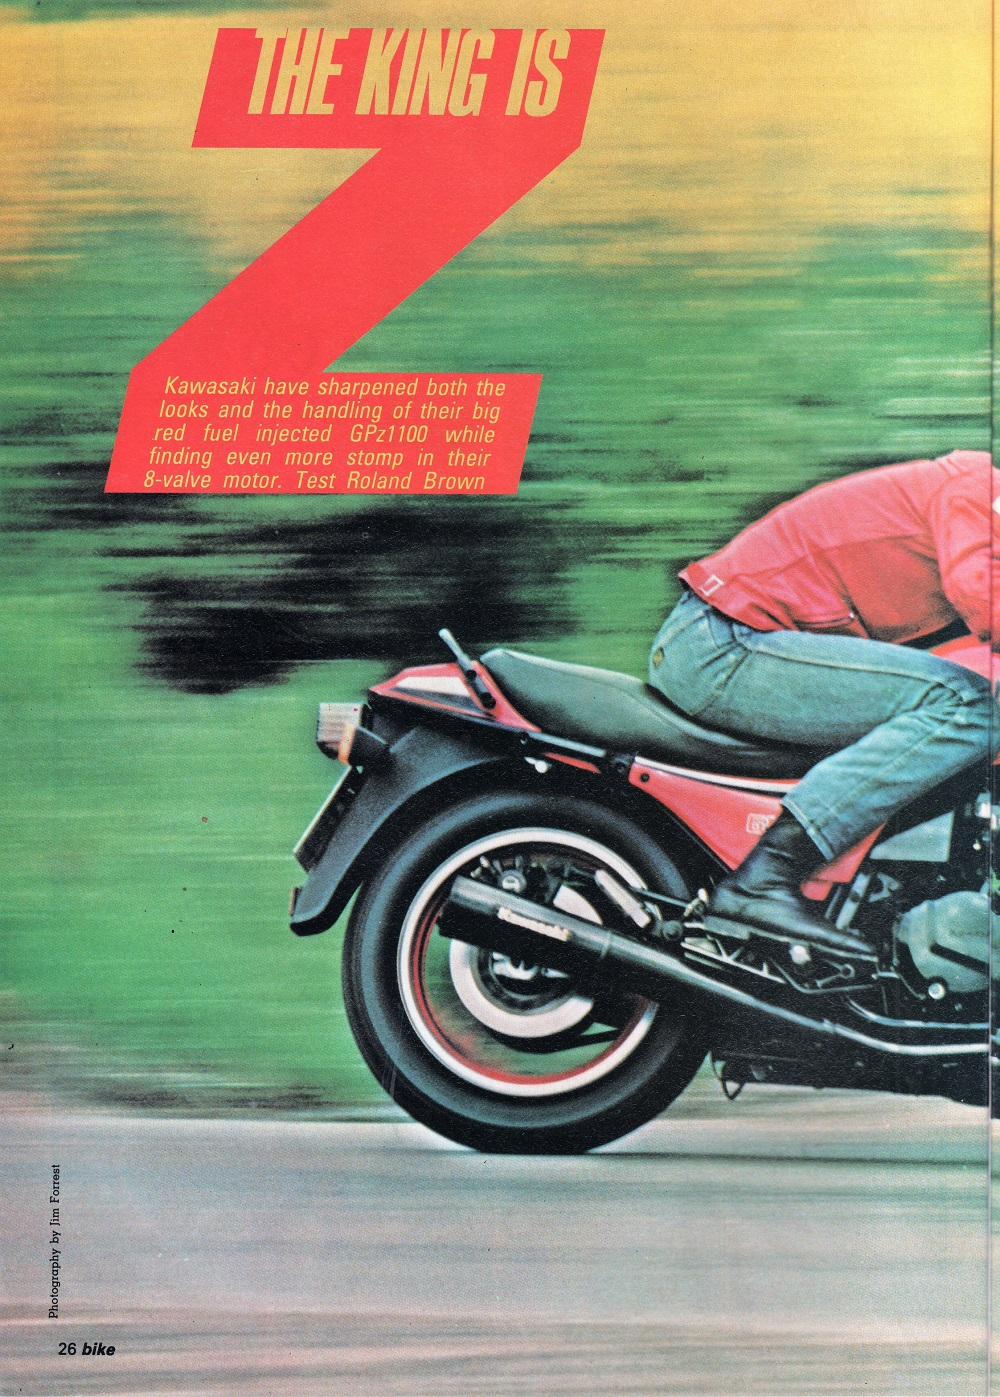 1983 Kawasaki GPZ 1100 road test. 1.jpg